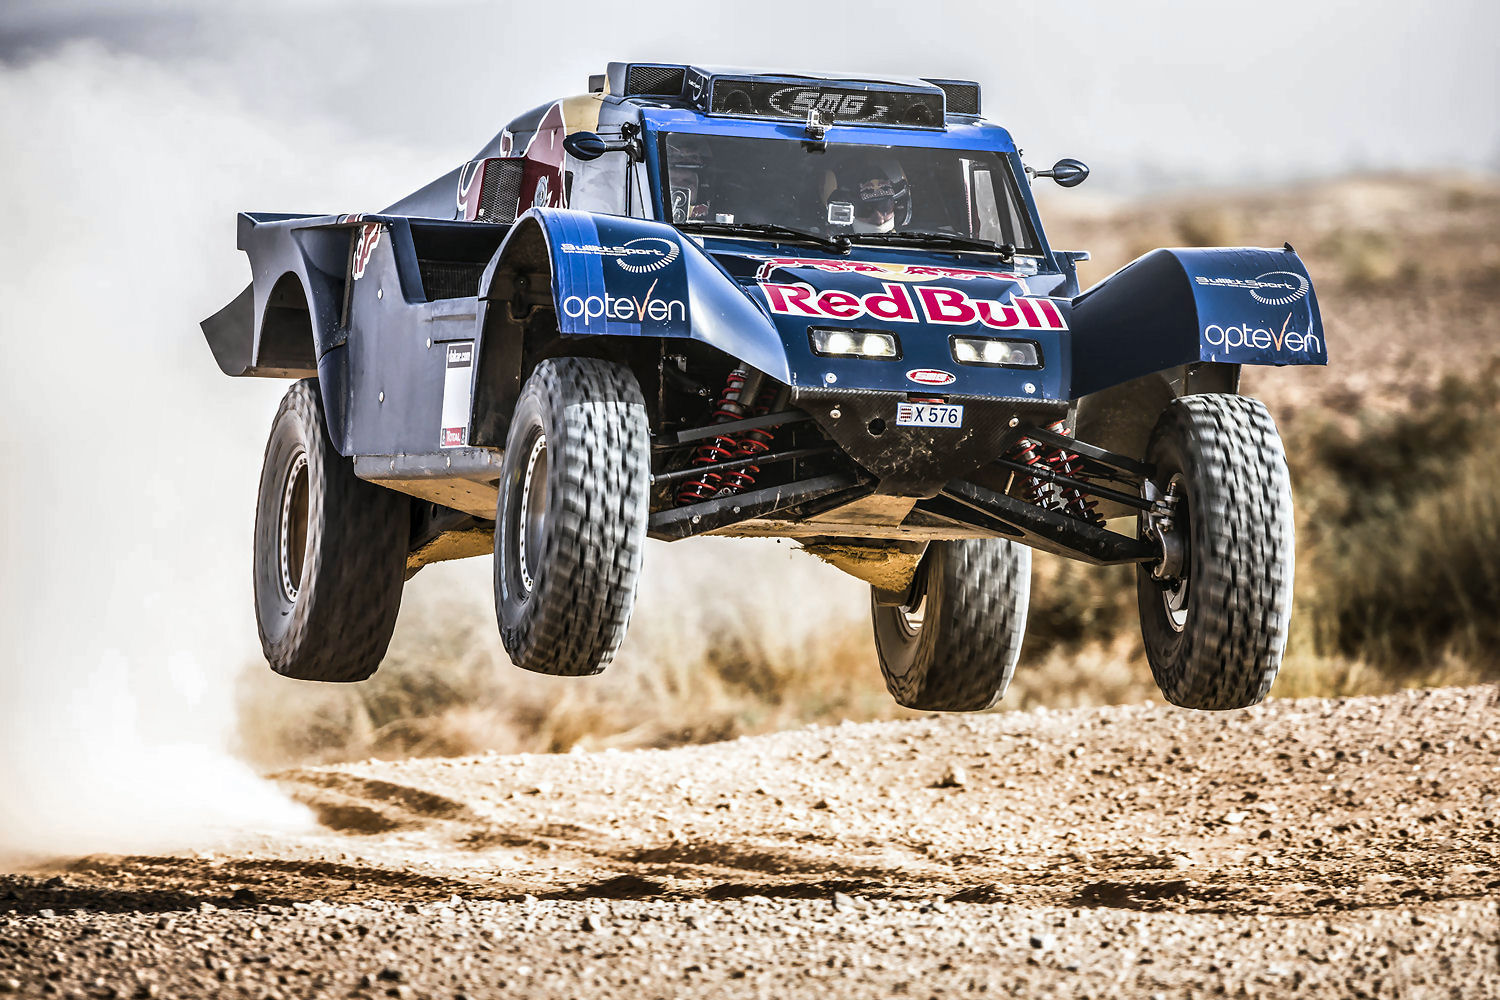 carlos-sainz-dakar-rally-red-bull-smg-rally-team2